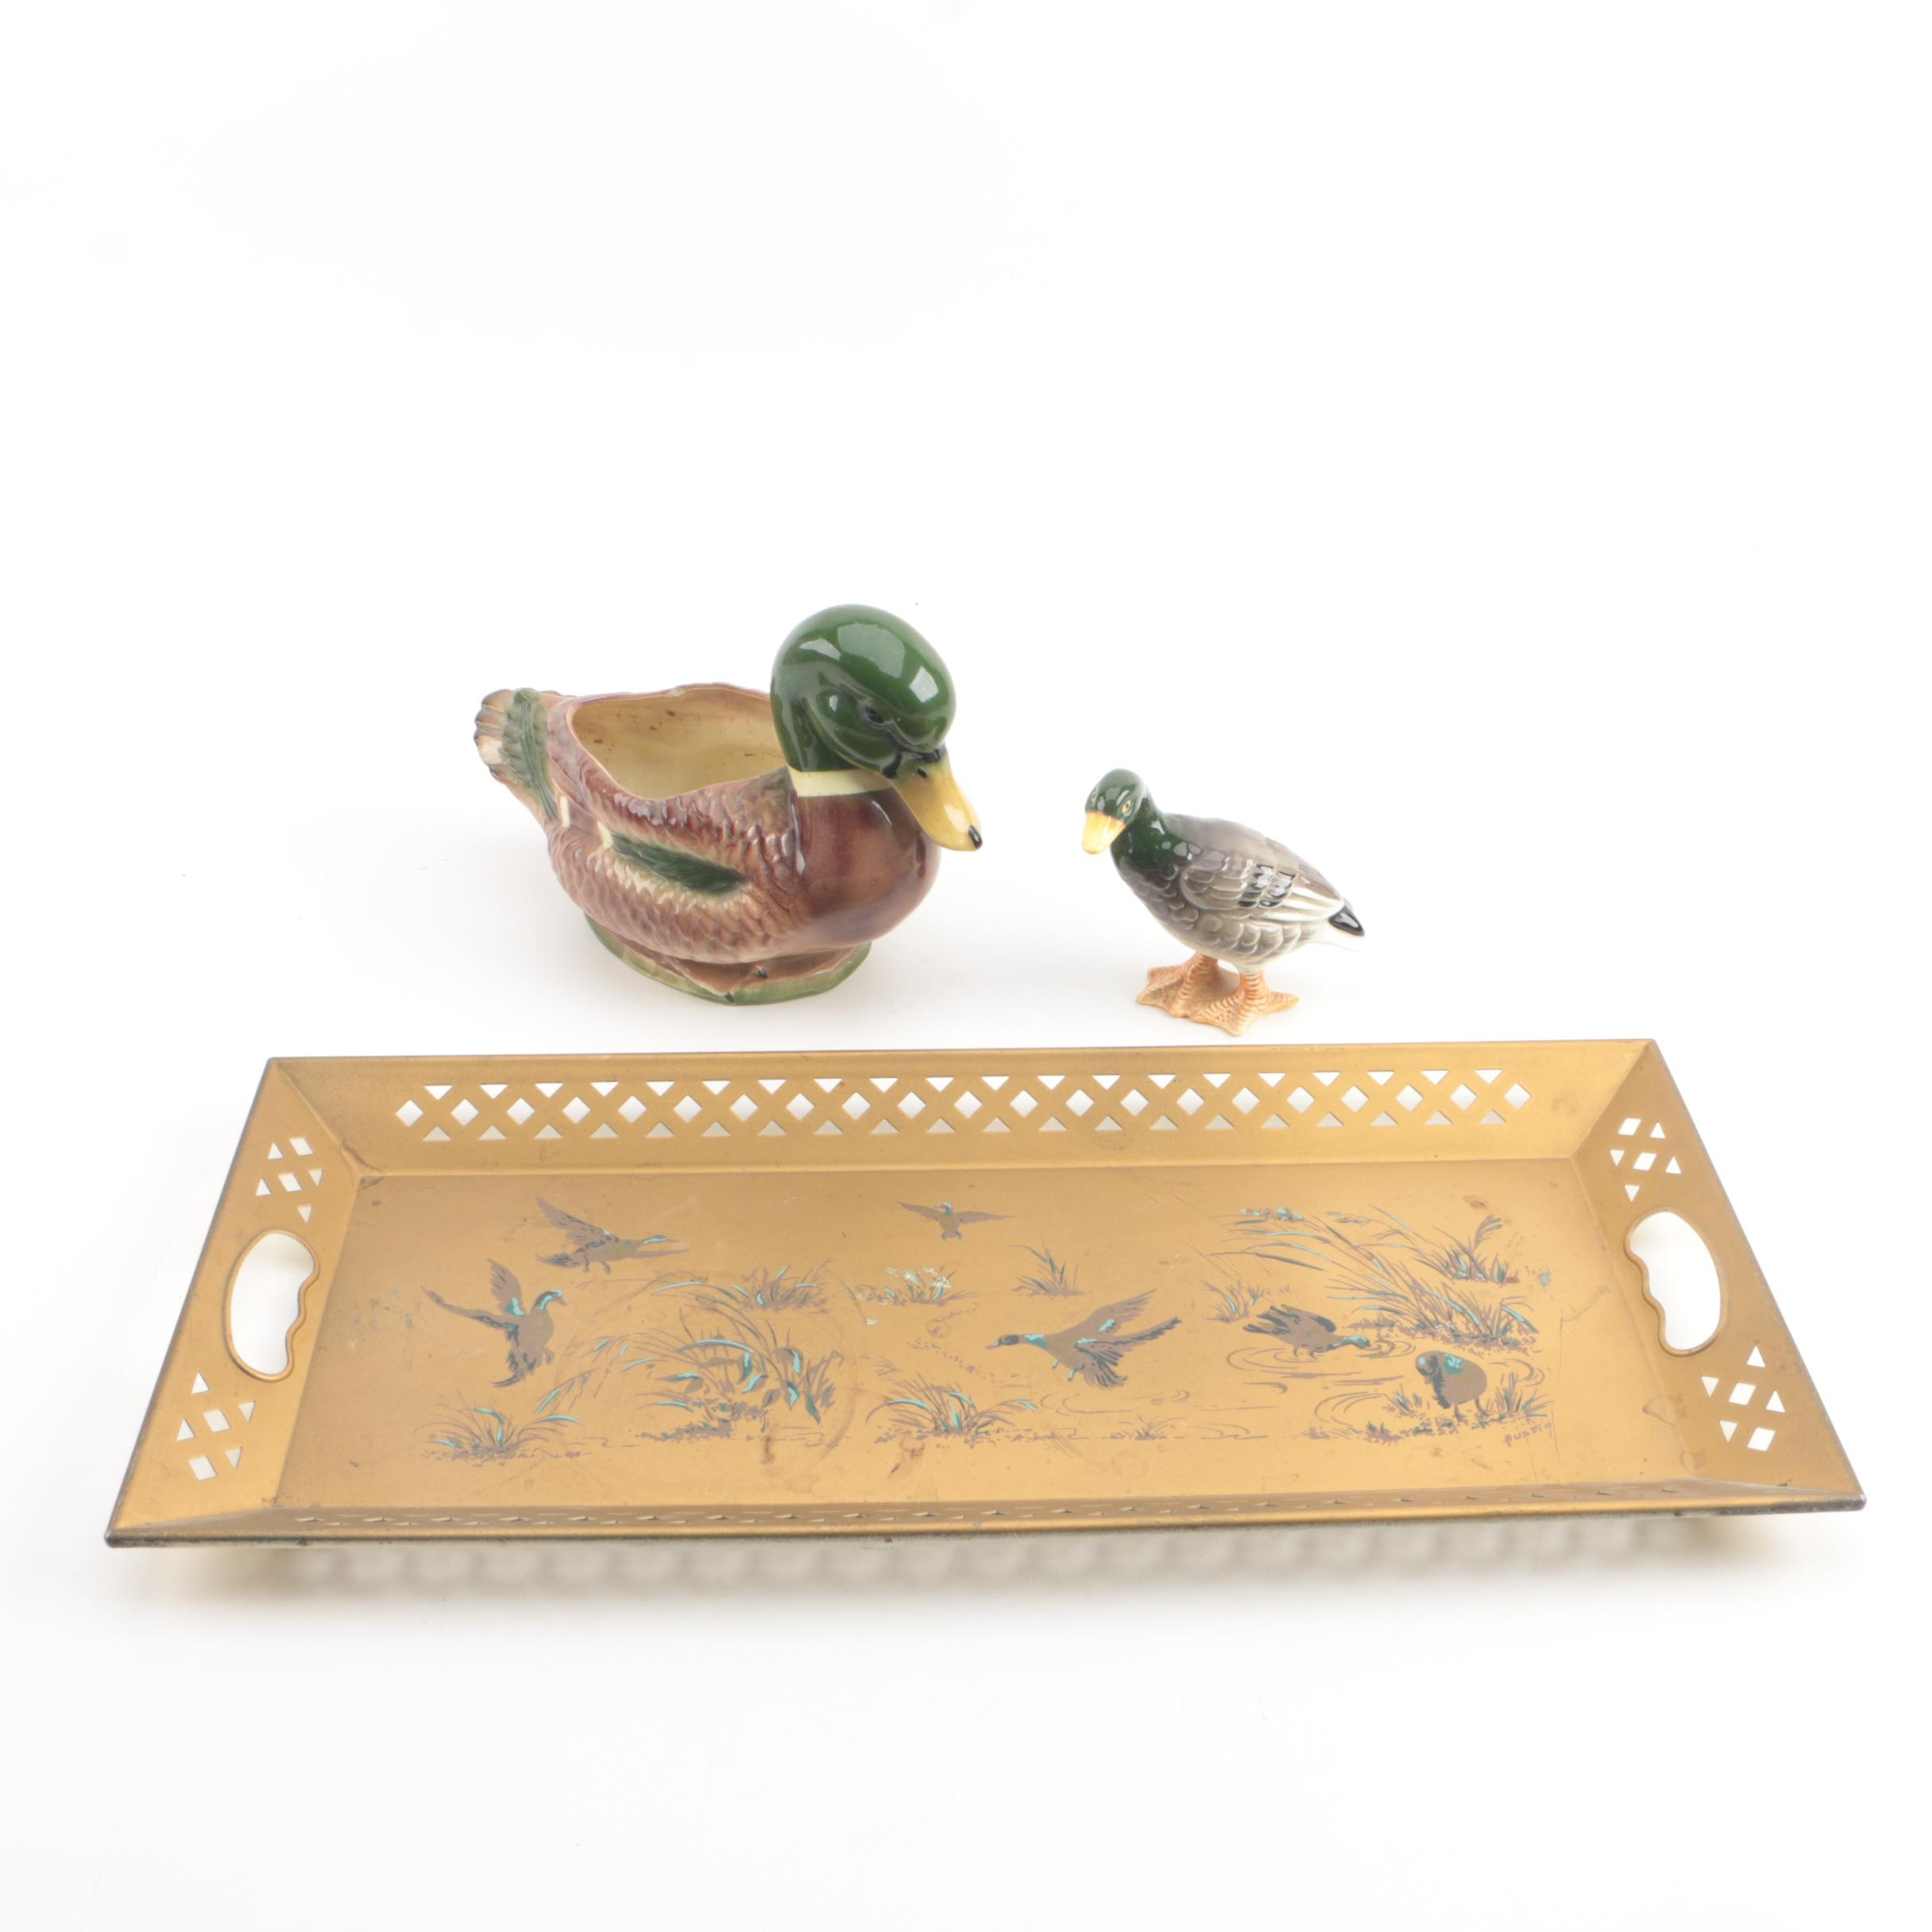 Vintage Duck Themed Tole Tray with Ceramic Figurine and Bowl